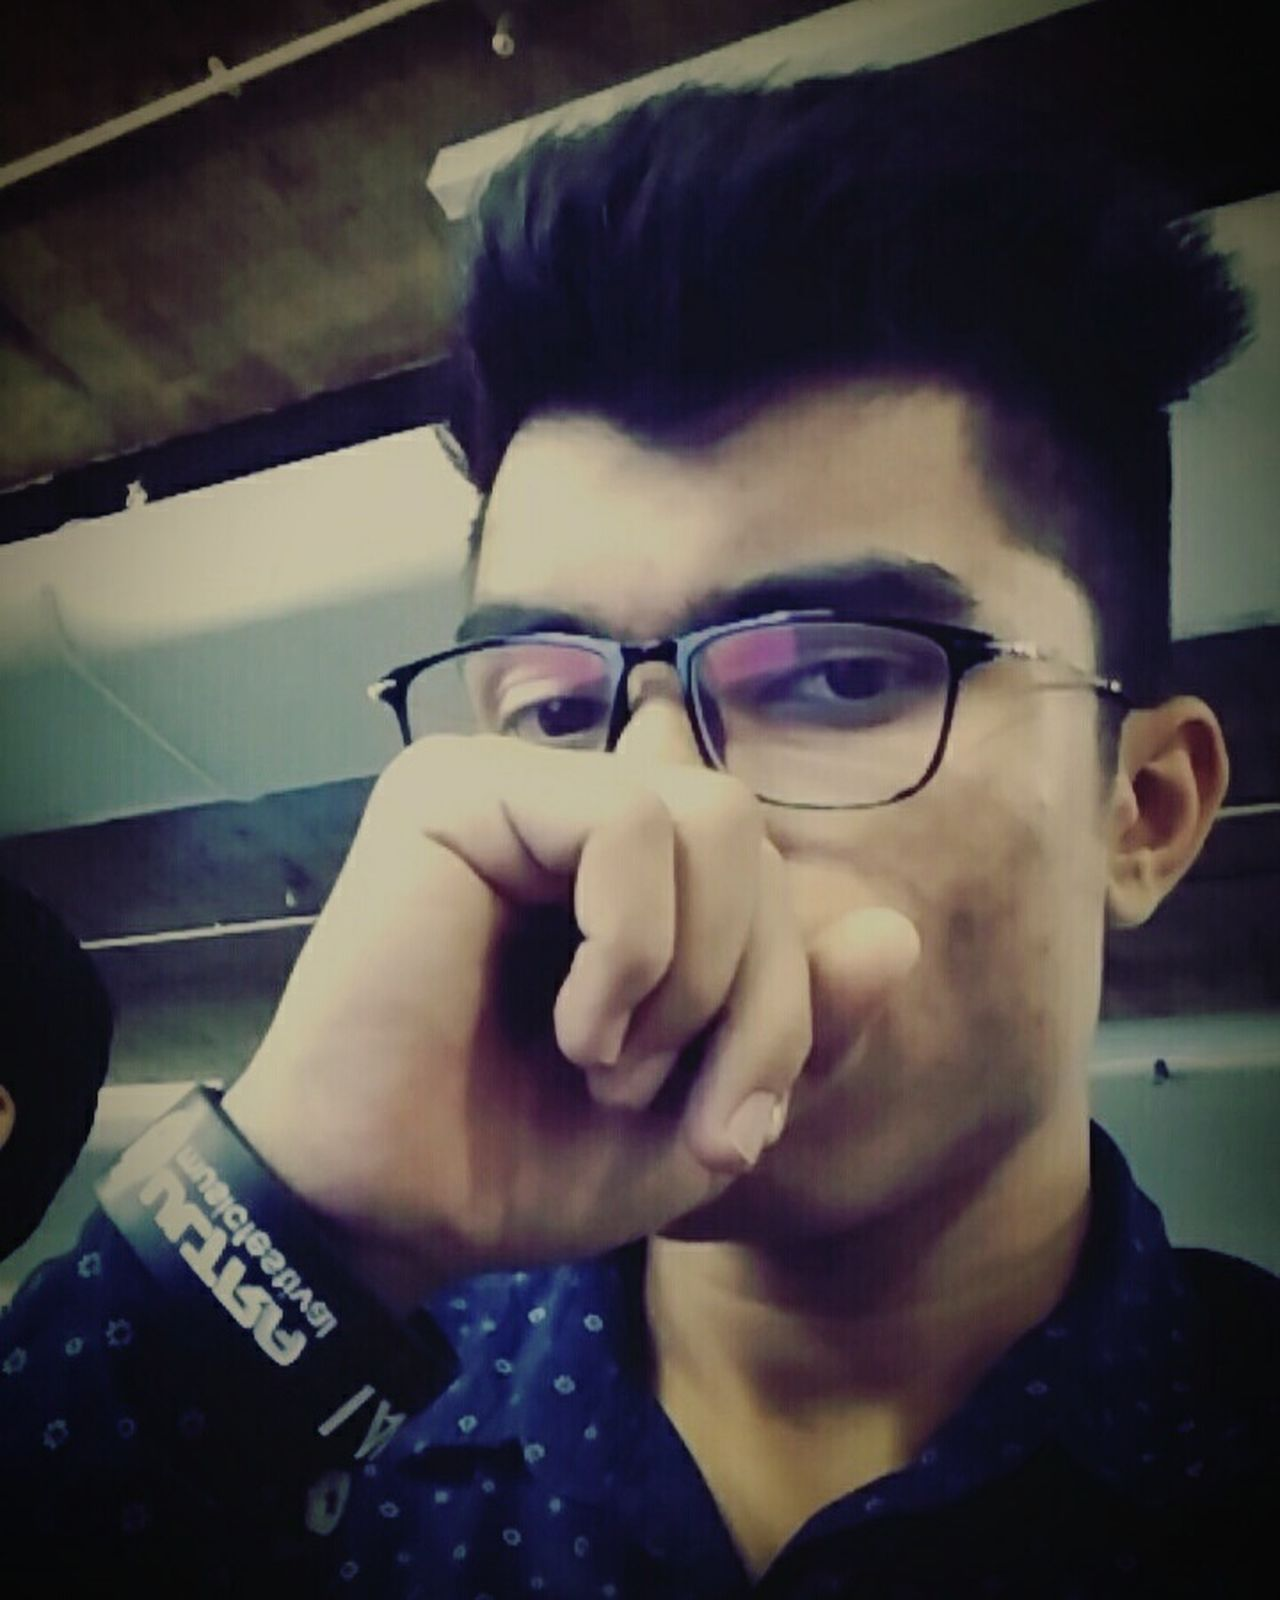 Headshot Only Men One Person Reflection Eyeglasses  One Man Only Adults Only People Adult Portrait Close-up Human Body Part Young Adult Day Indoors  SexyAsFuck Love❤ Awwwwwwwsum :) Boy I Love You ❤ My Love❤ Selfie ♥ Selfienation One Young Man Only Love You💋